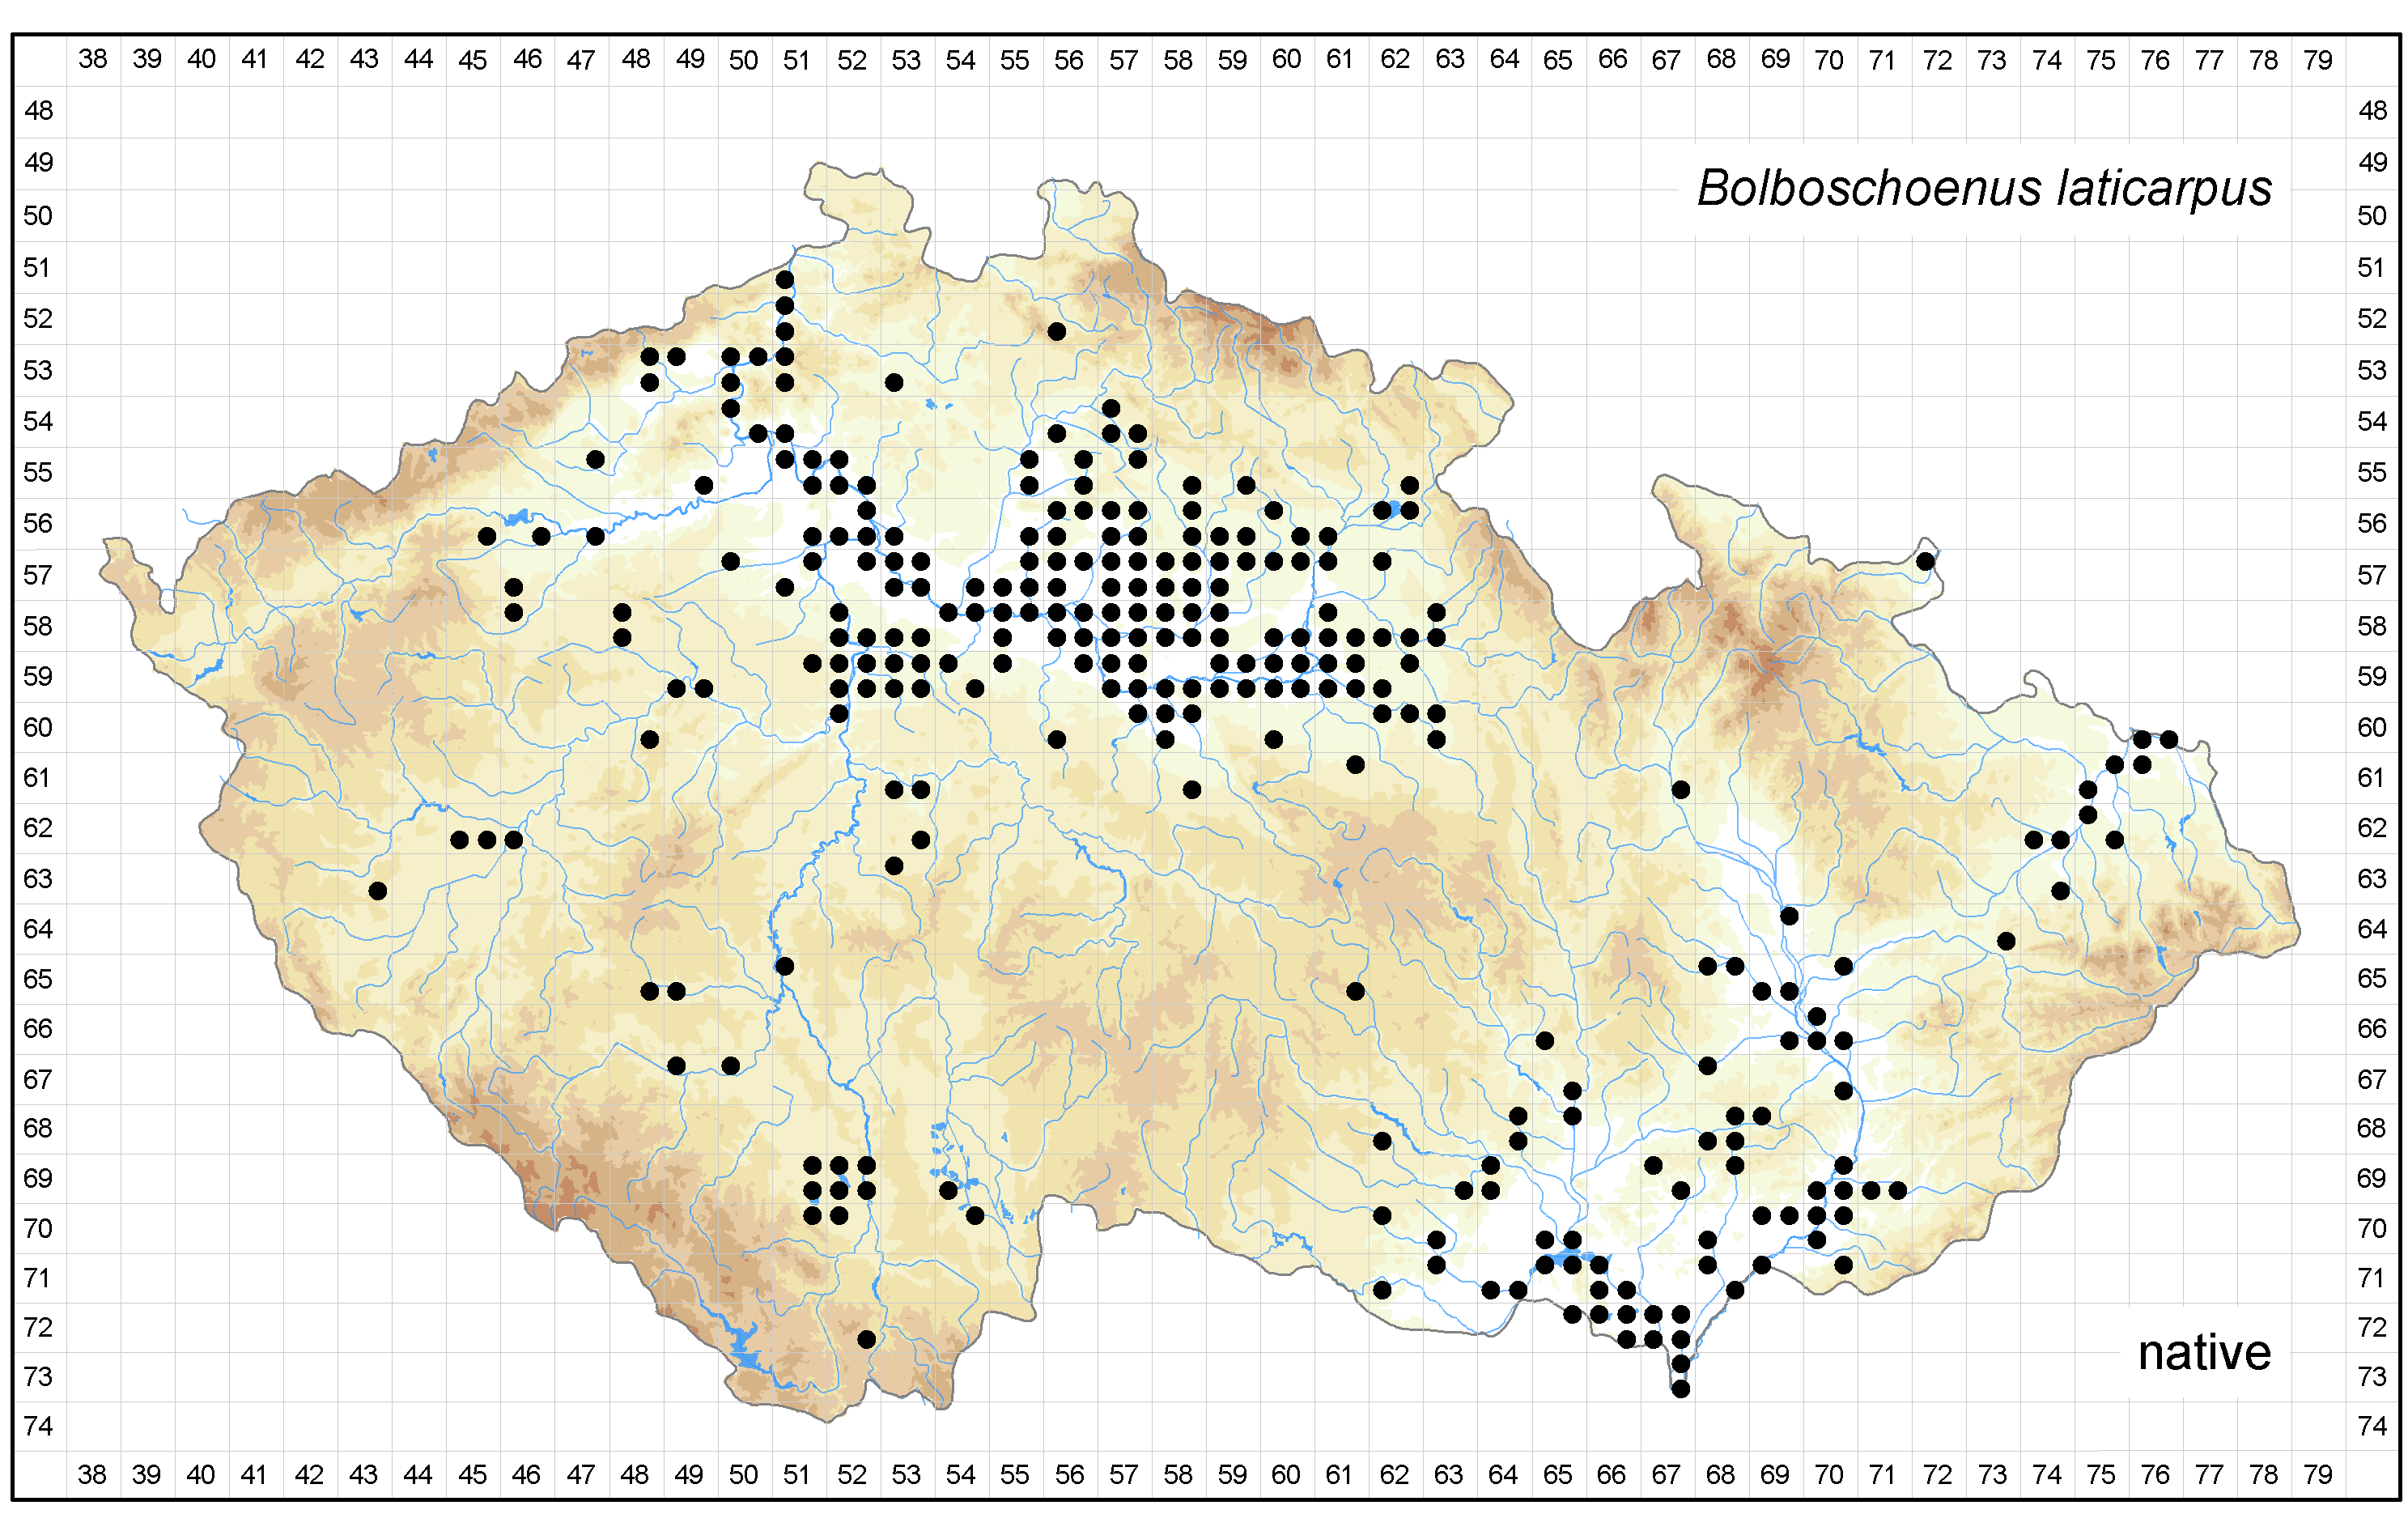 Distribution of Bolboschoenus laticarpus in the Czech Republic Author of the map: Michal Ducháček, Zdenka Hroudová Map produced on: 18-11-2015 Database records used for producing the distribution map